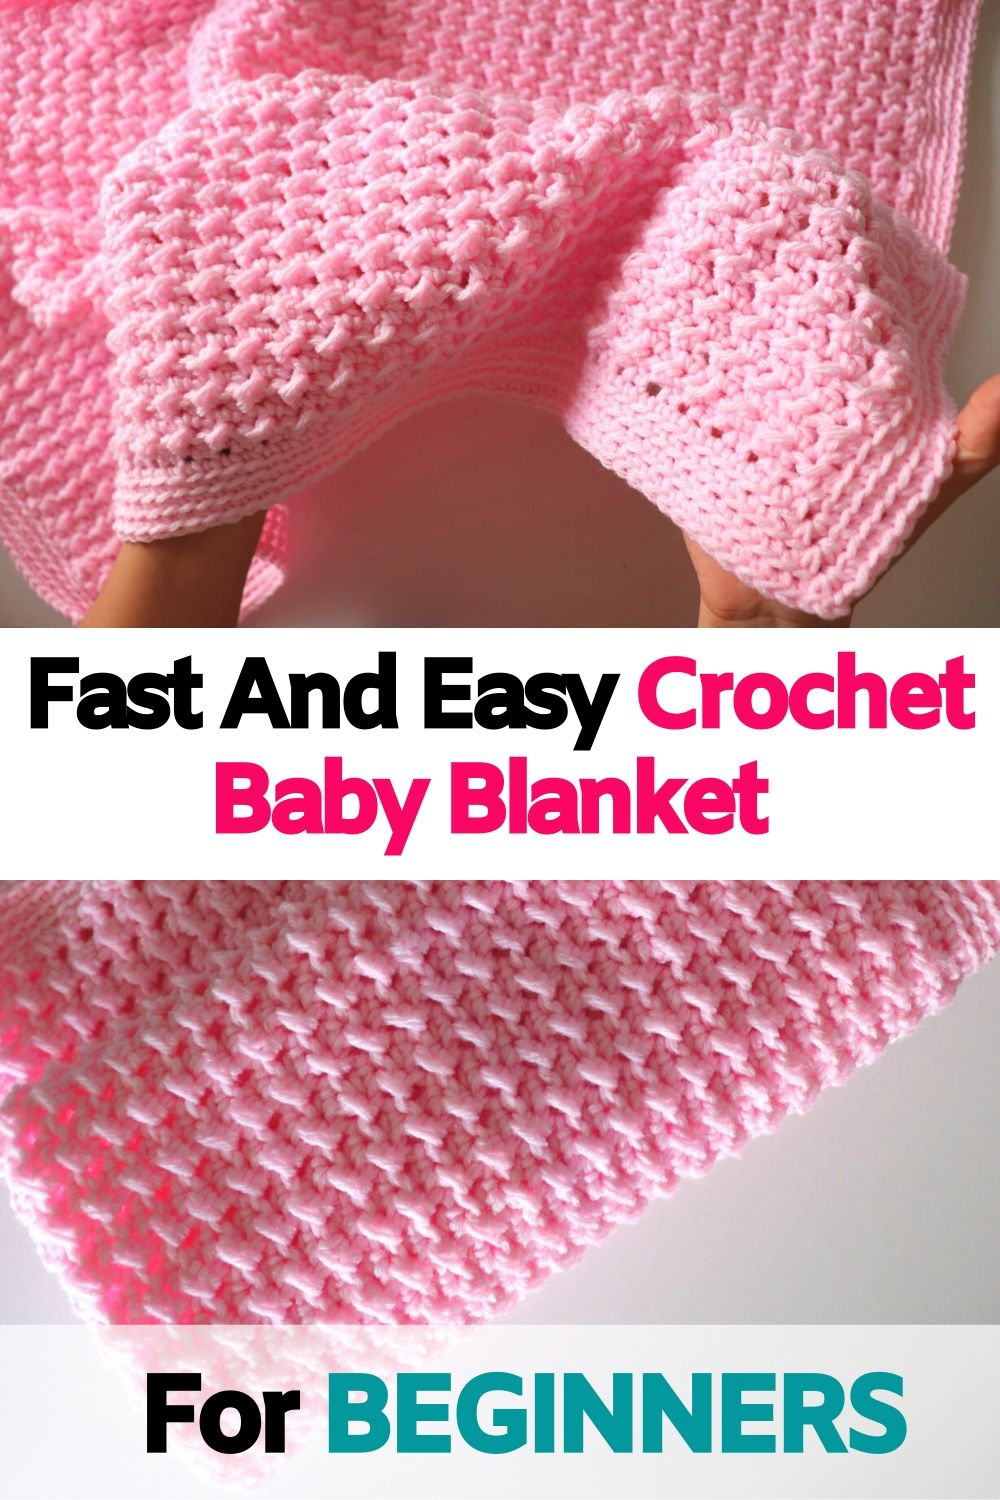 Fast And Easy Crochet Baby Blanket For BEGINNERS